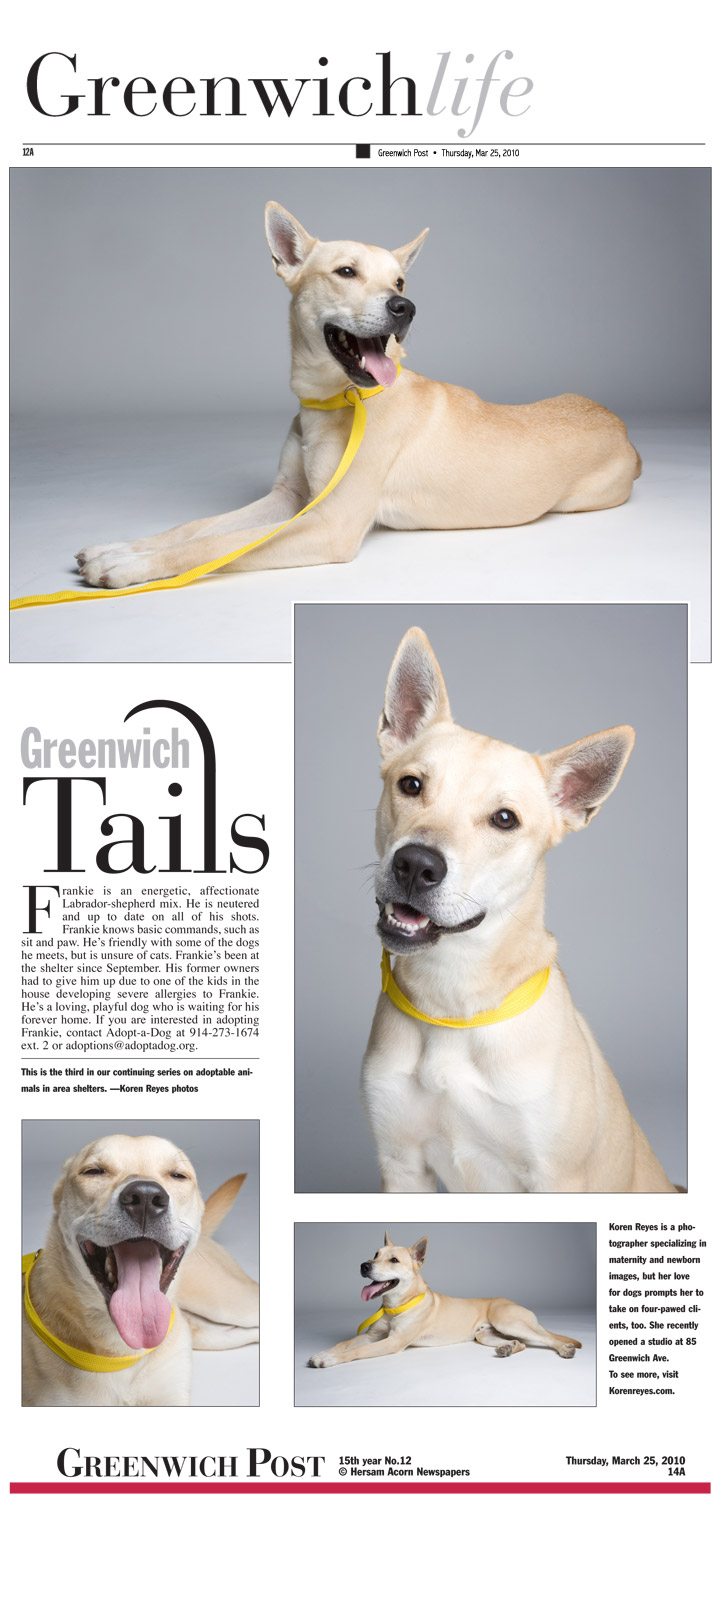 Yellow lab mix, Frankie needs a forever home. Photos by Koren Reyes of Newport, RI and NYC